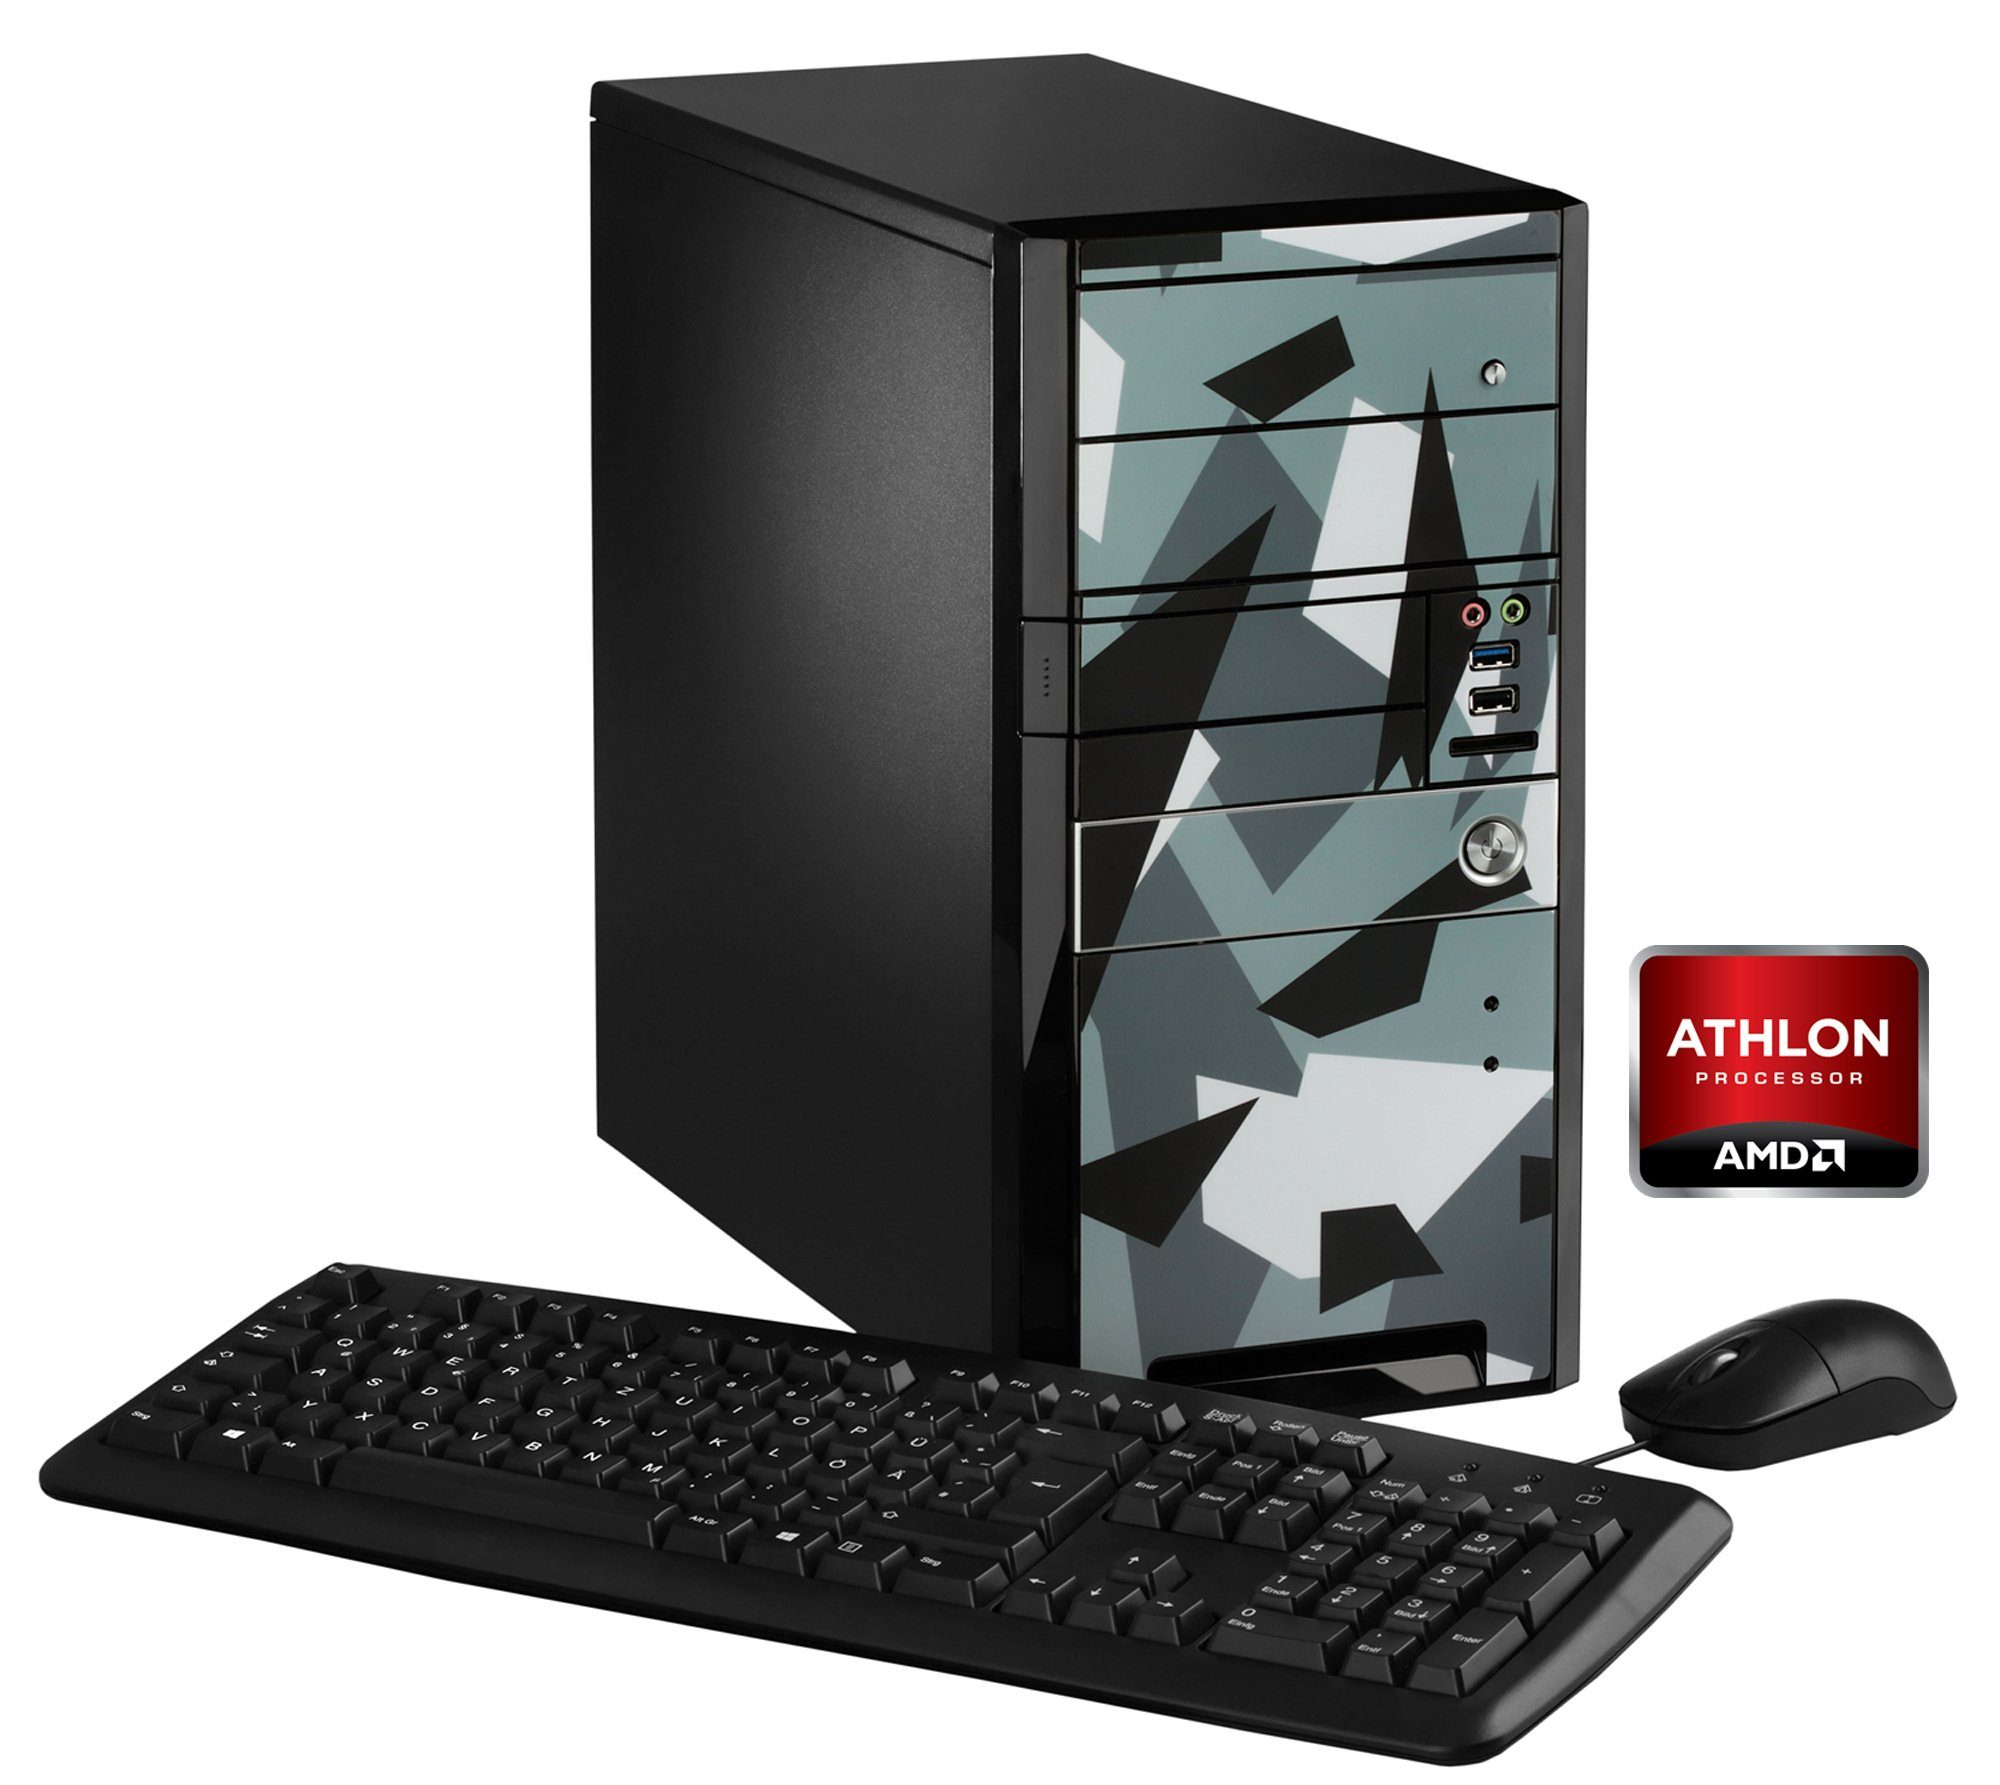 Hyrican PC AMD Athlon X4 880K, 16GB, SSD + HDD, AMD RX460 »Limited Edition - Ice 5284 «